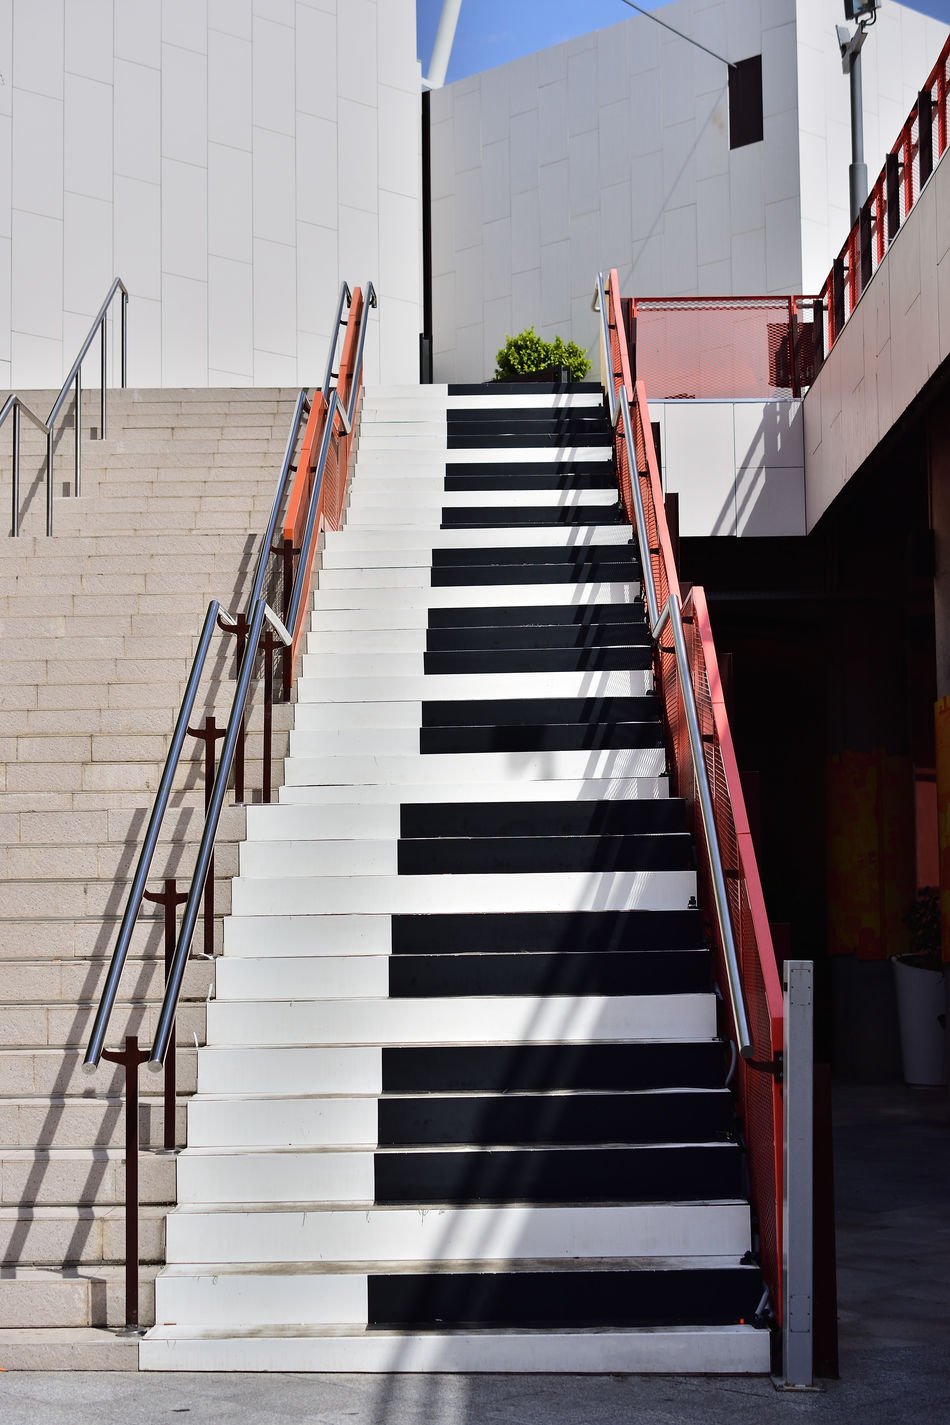 Piano stairs Steps Musical Instrument Piano Keys Stair